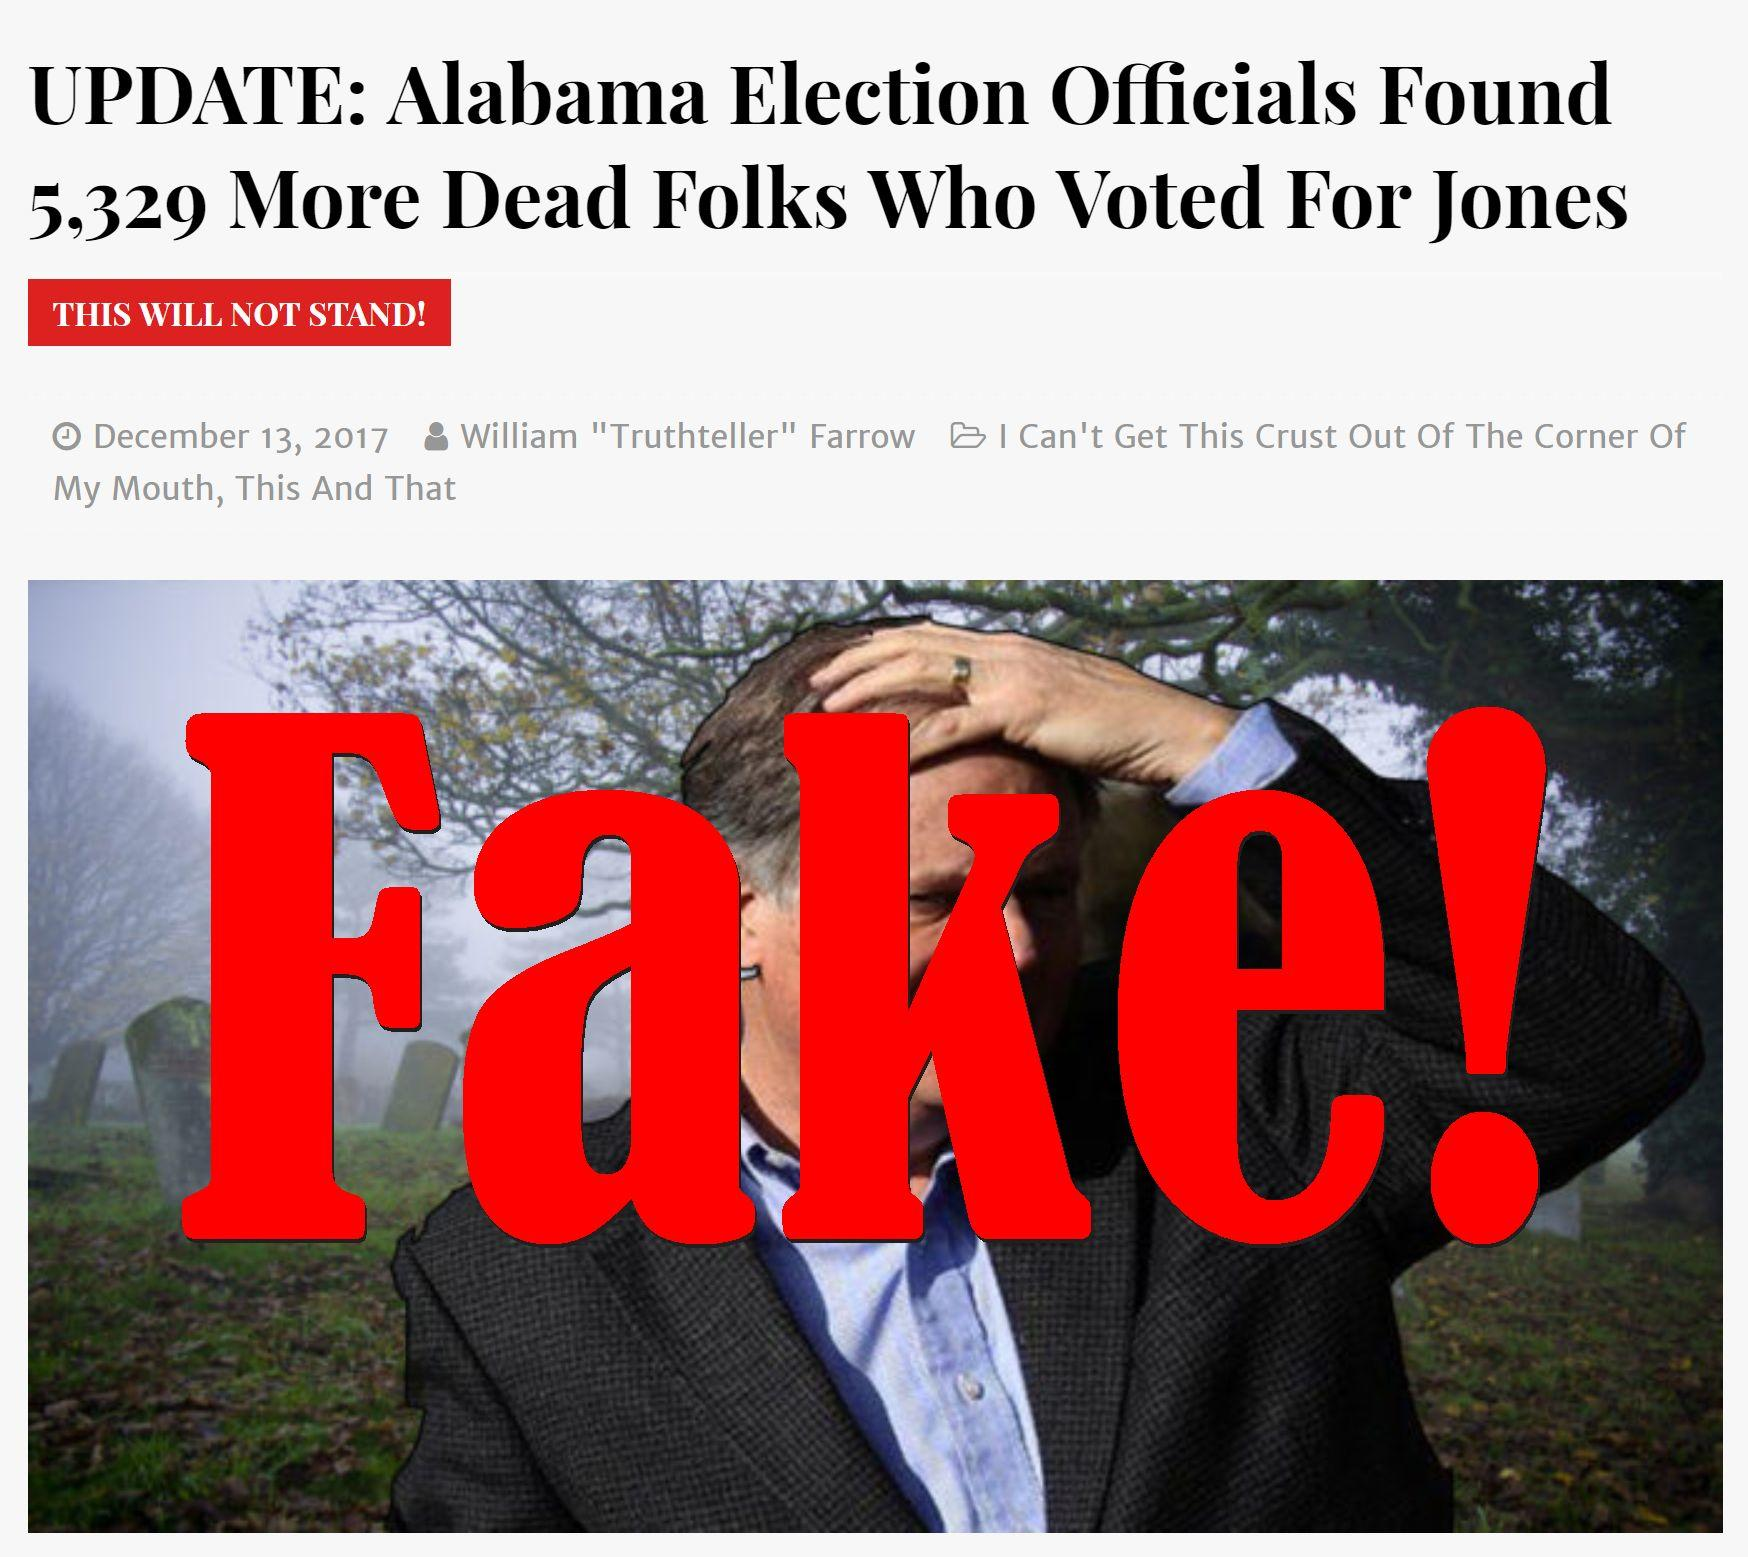 Fake News: Alabama Election Officials Did NOT Find 5,329 More Dead Folks Who Voted For Jones